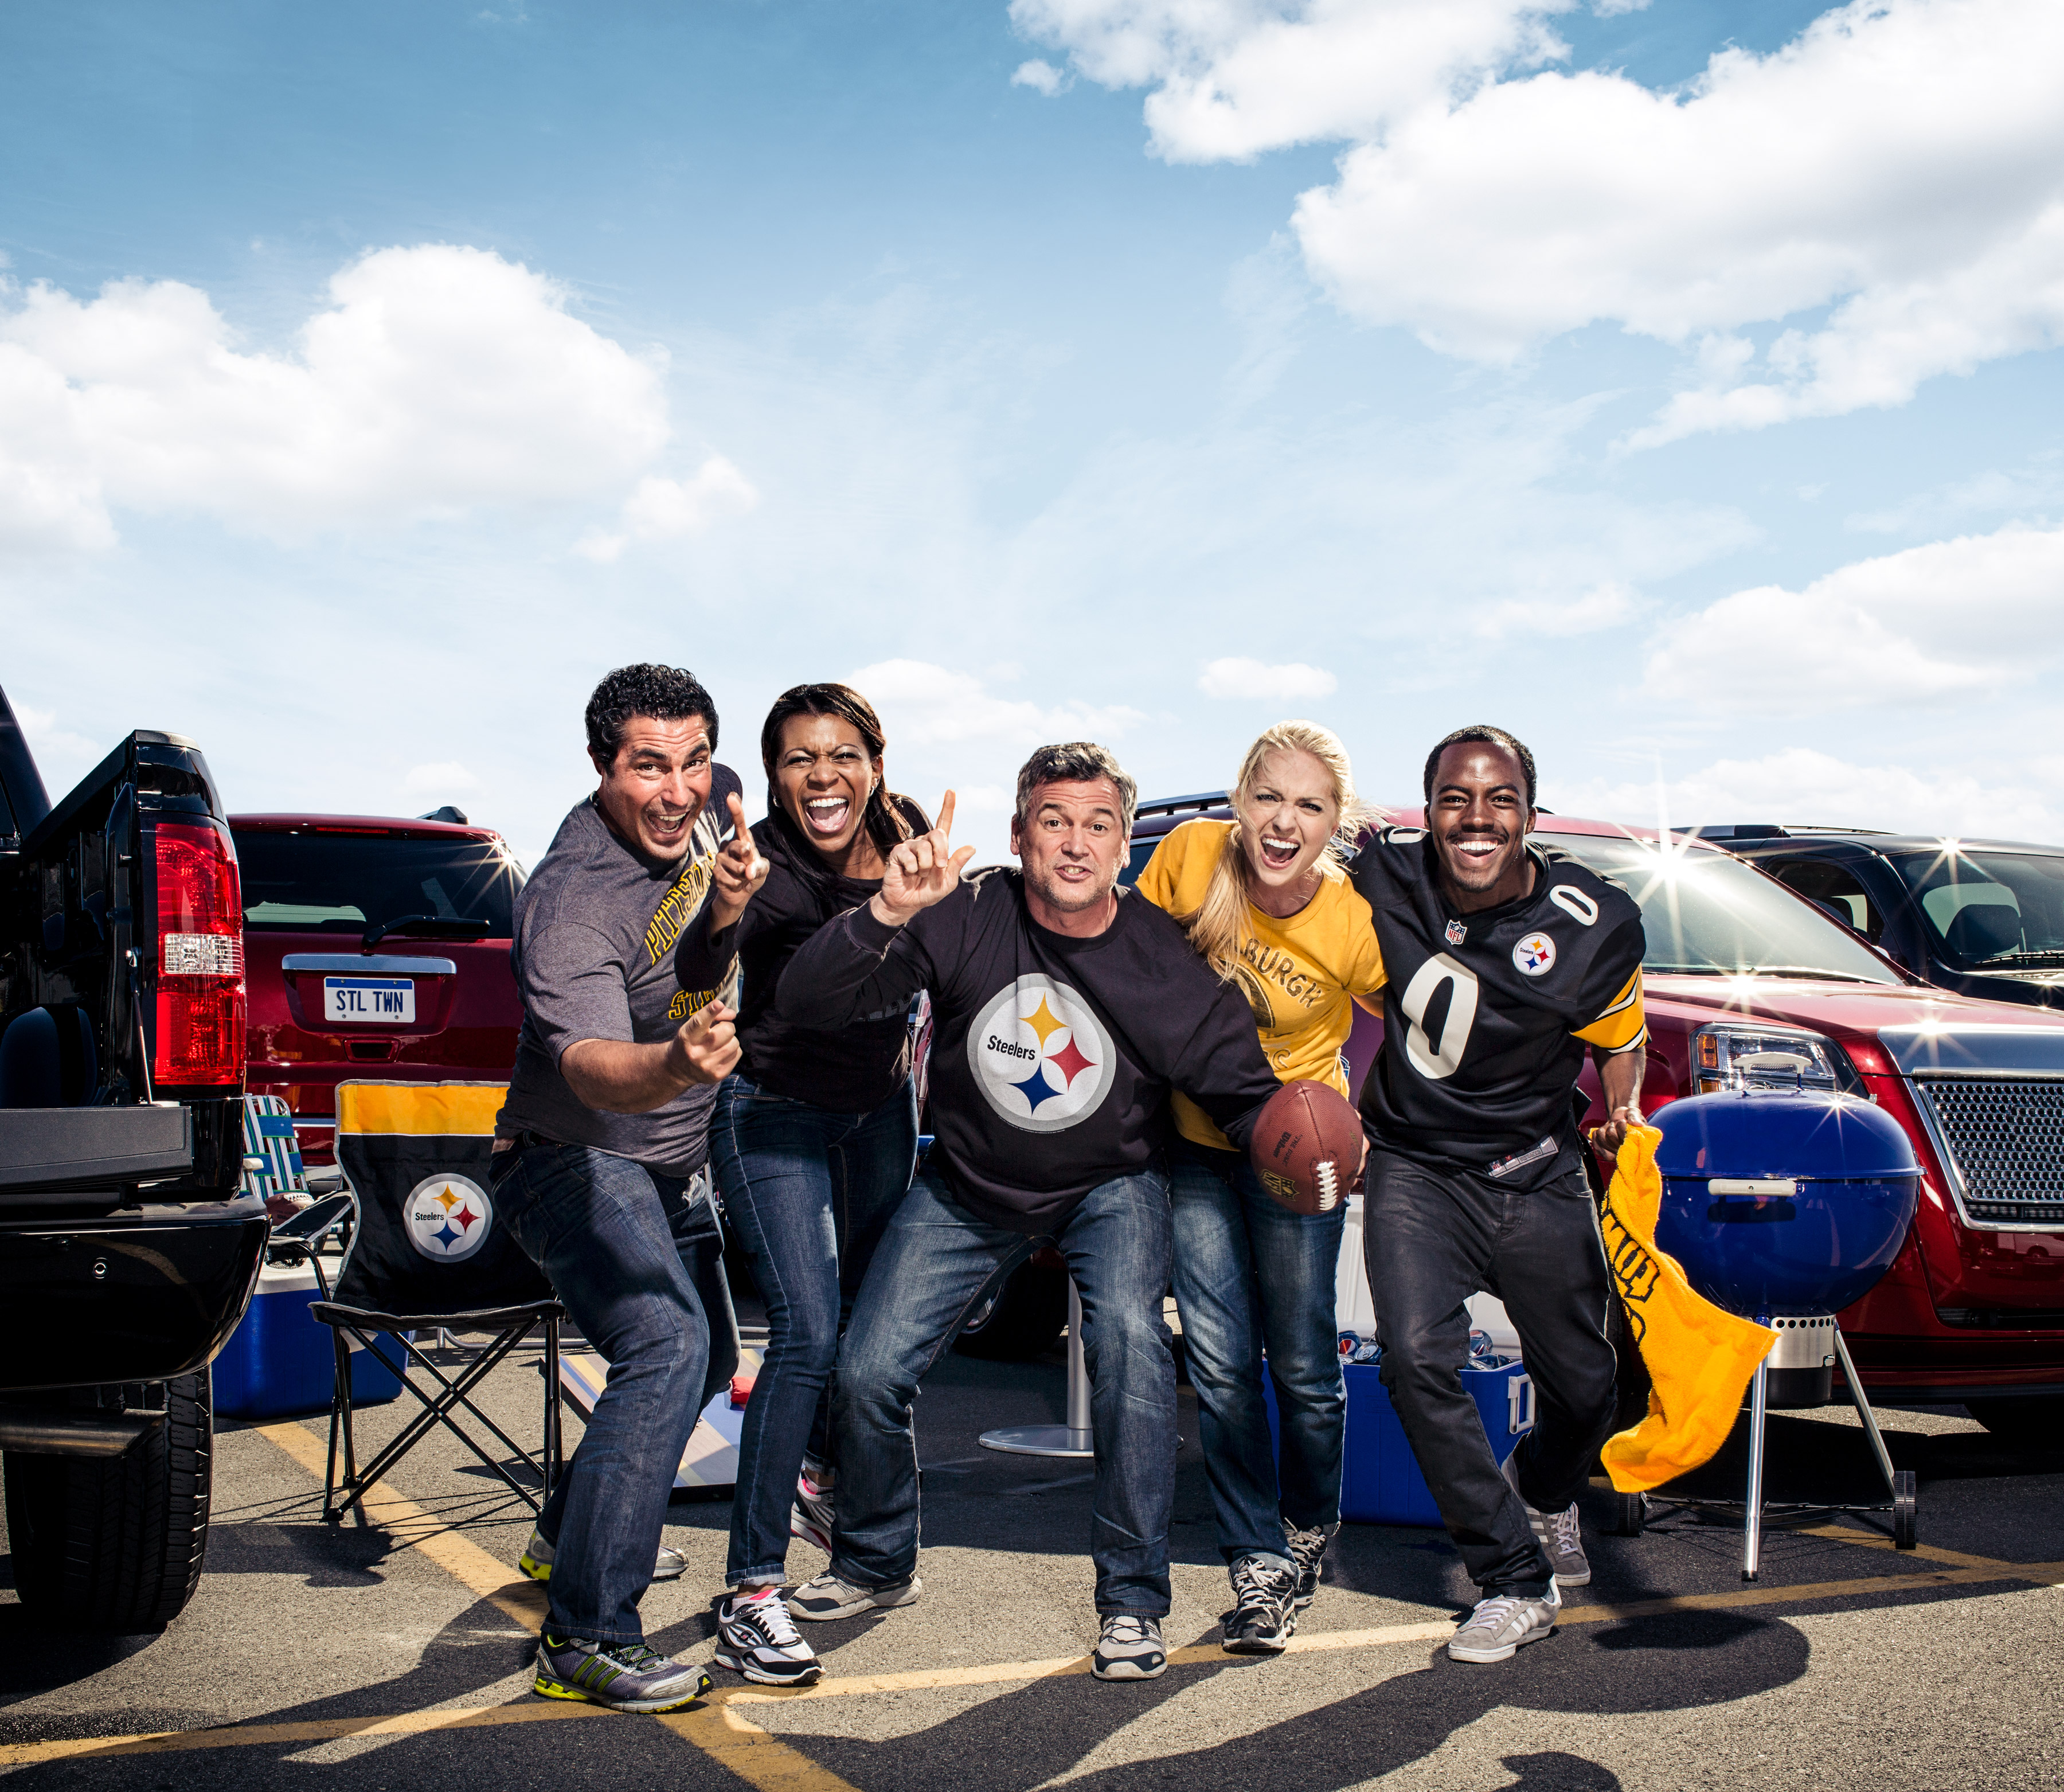 NFL_FritoLay_Tailgating_Steelers-020-v1-1-Del